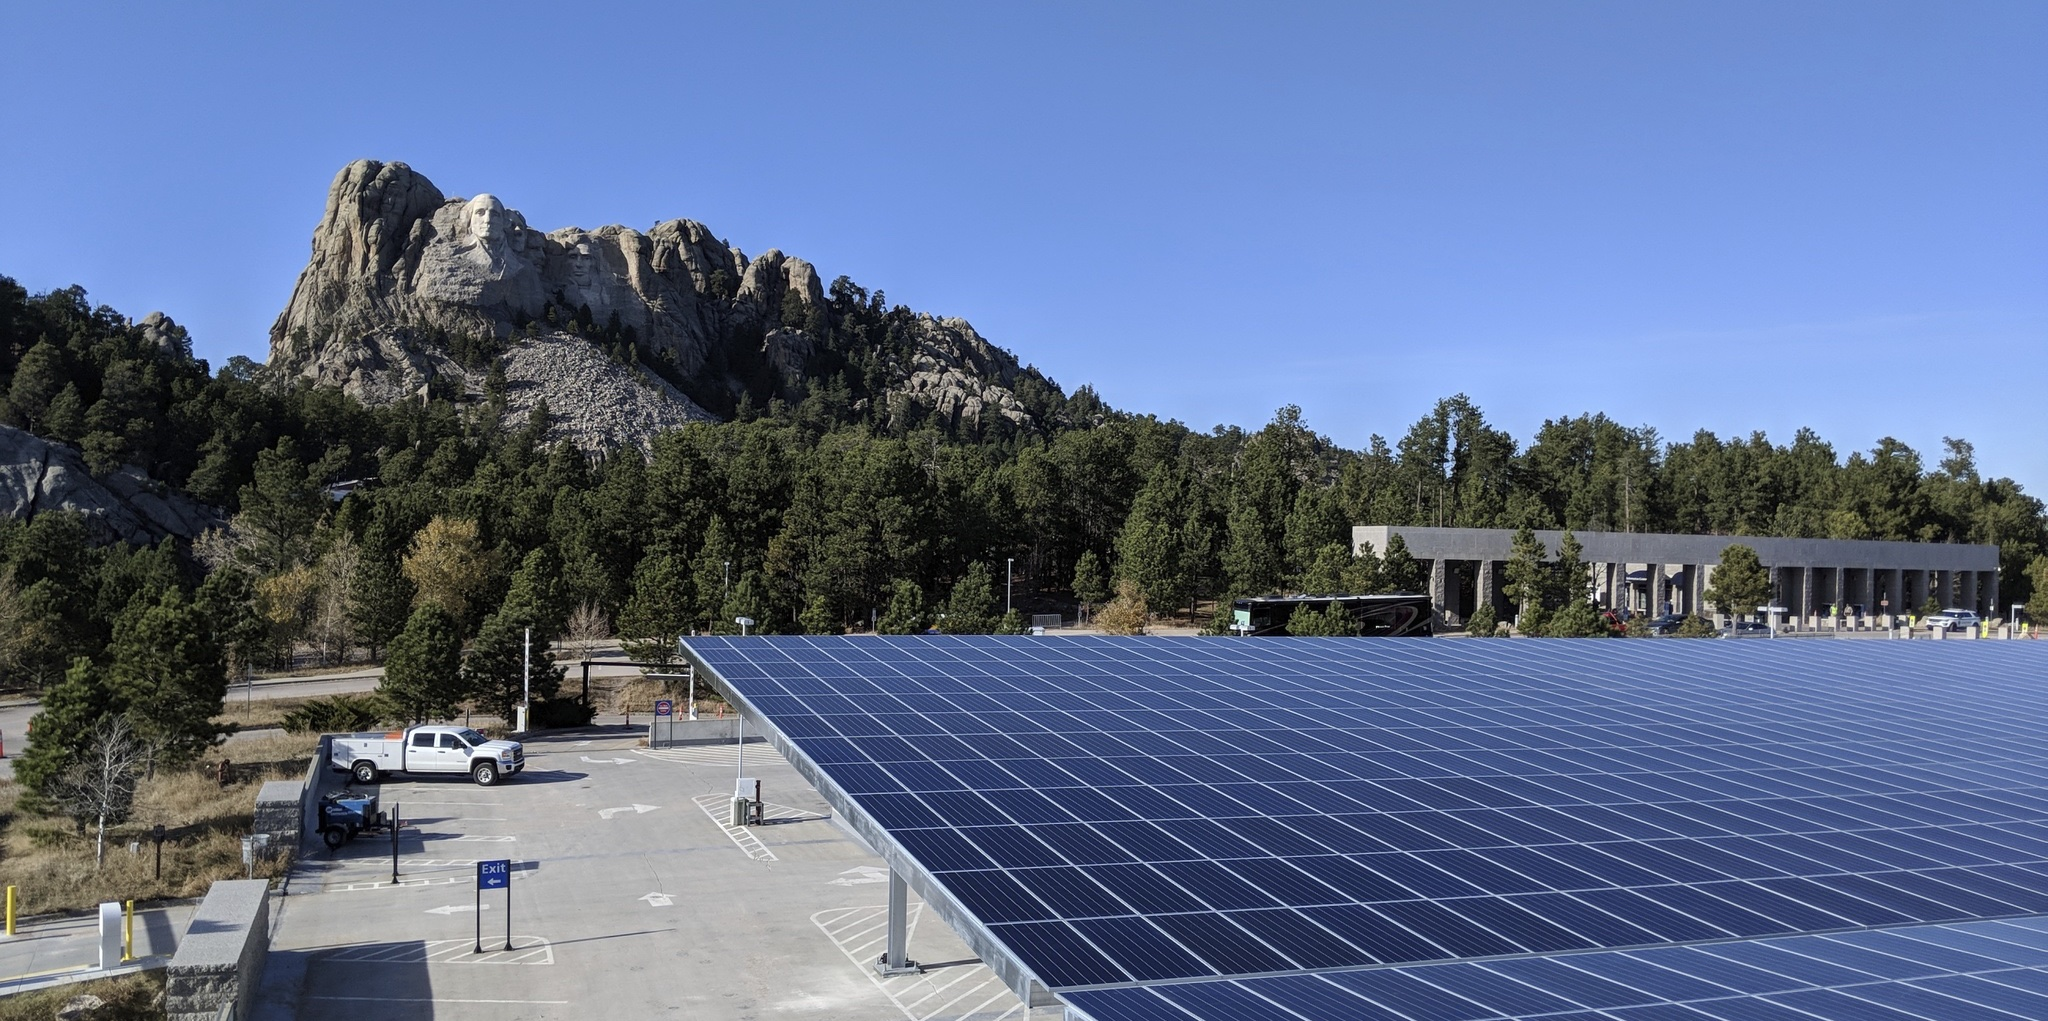 EGEB: Disney's solar farm, Mount Rushmore's solar carport, NY wind farm, and more